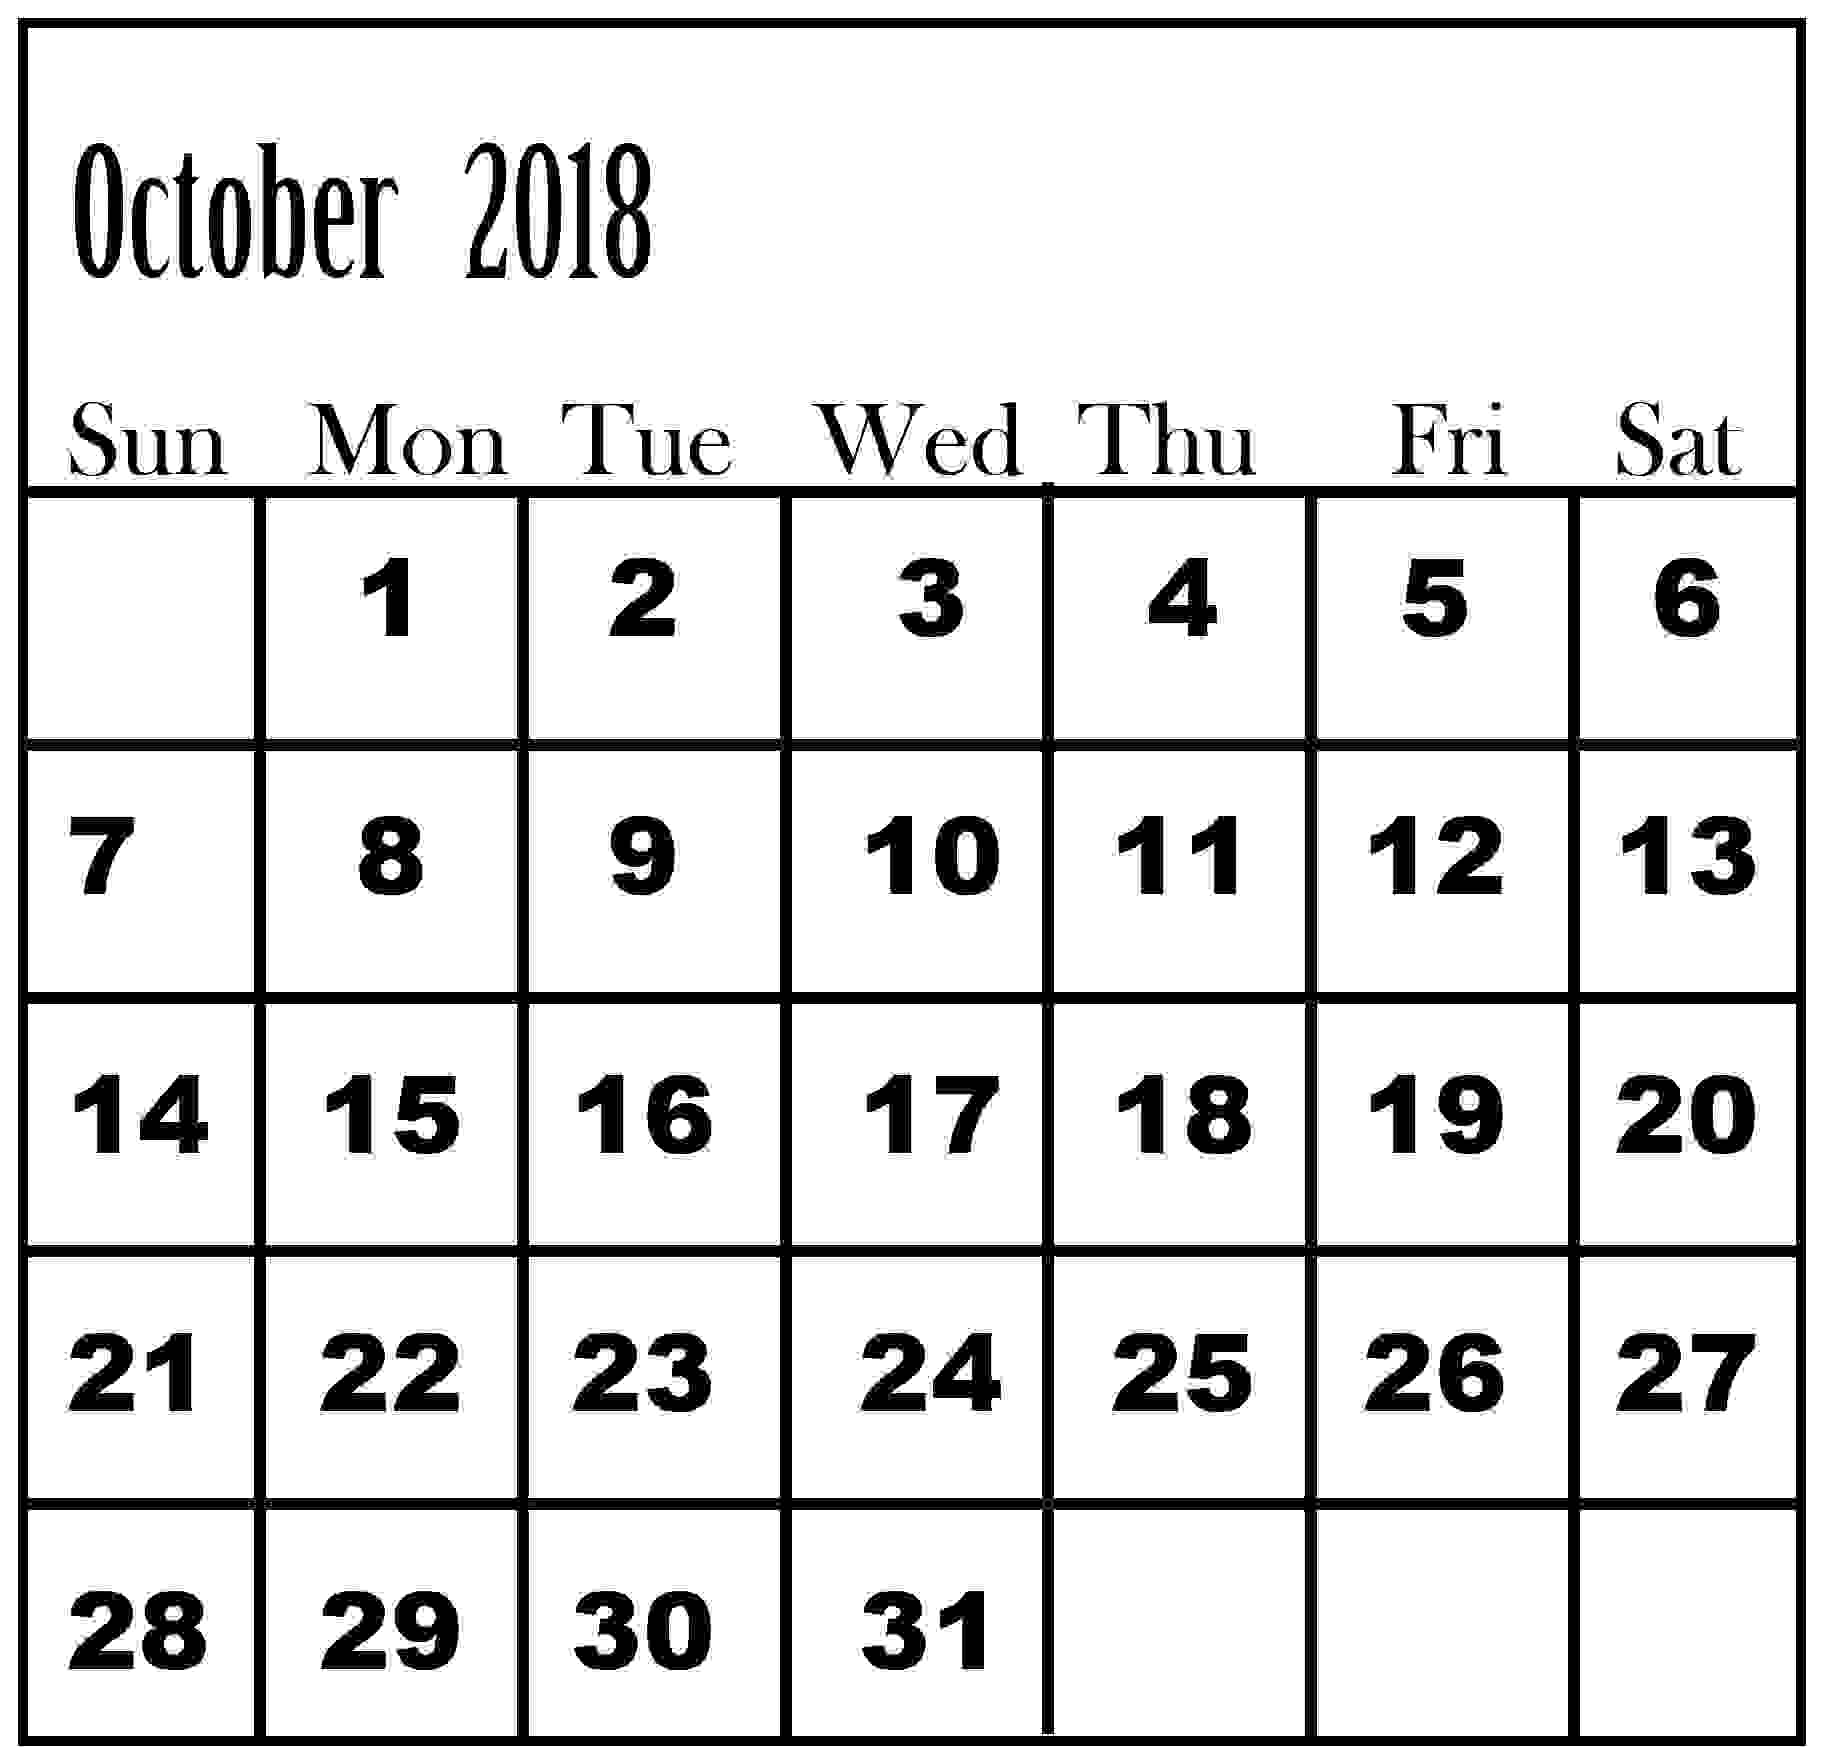 printable calendar october 2018 best calendar printable pdf Calendar October 2018 Printables erdferdf